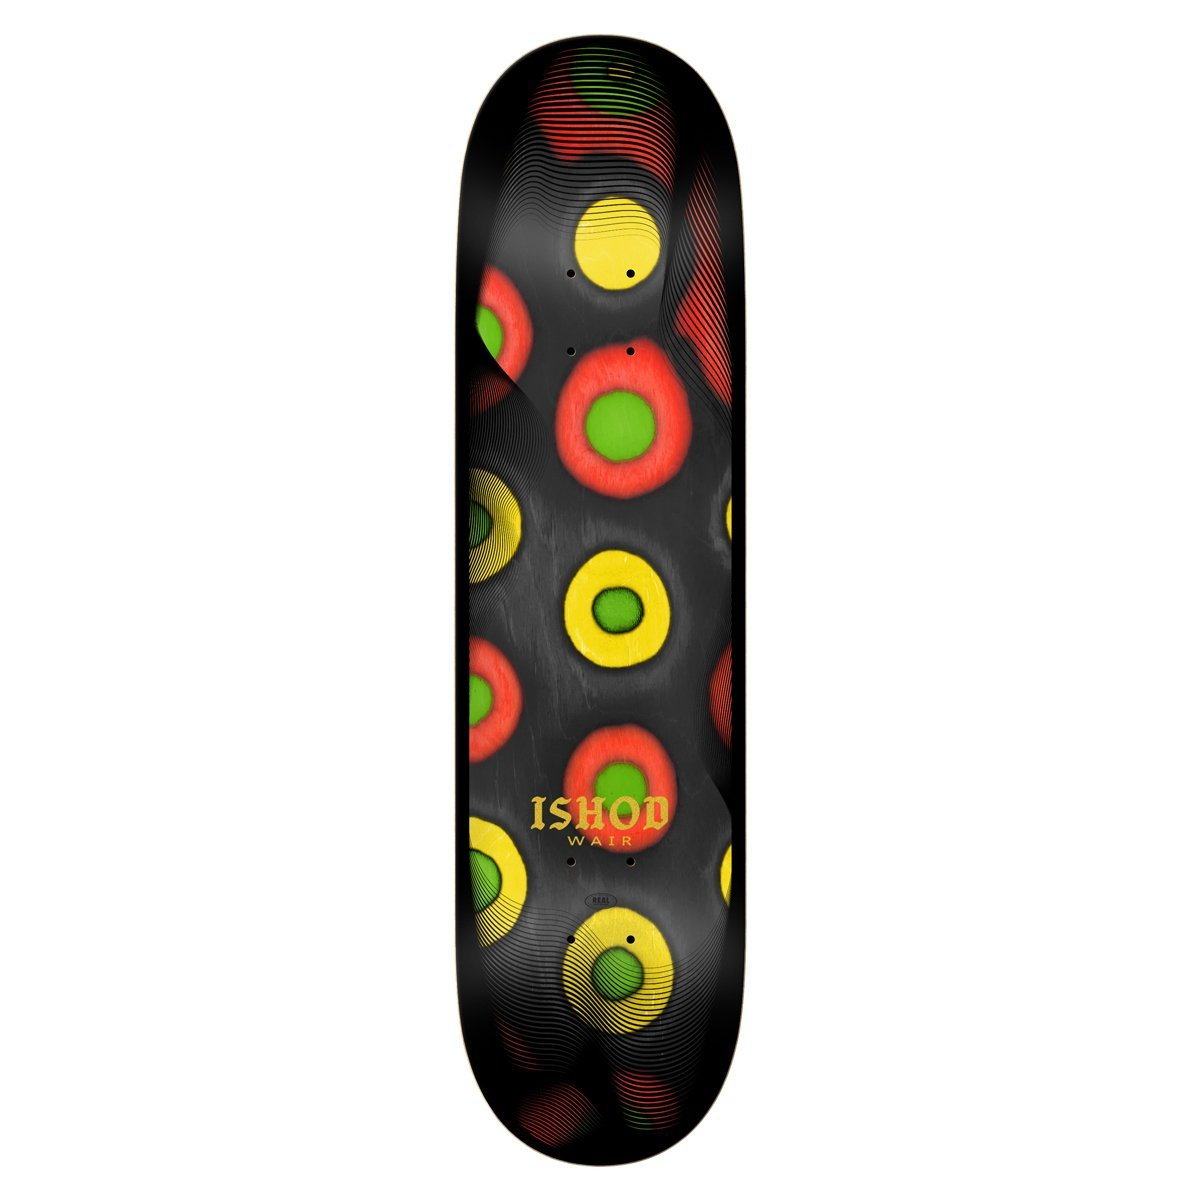 Real Eclipse LTD Deck Ishod - 8.18 Product Photo #1